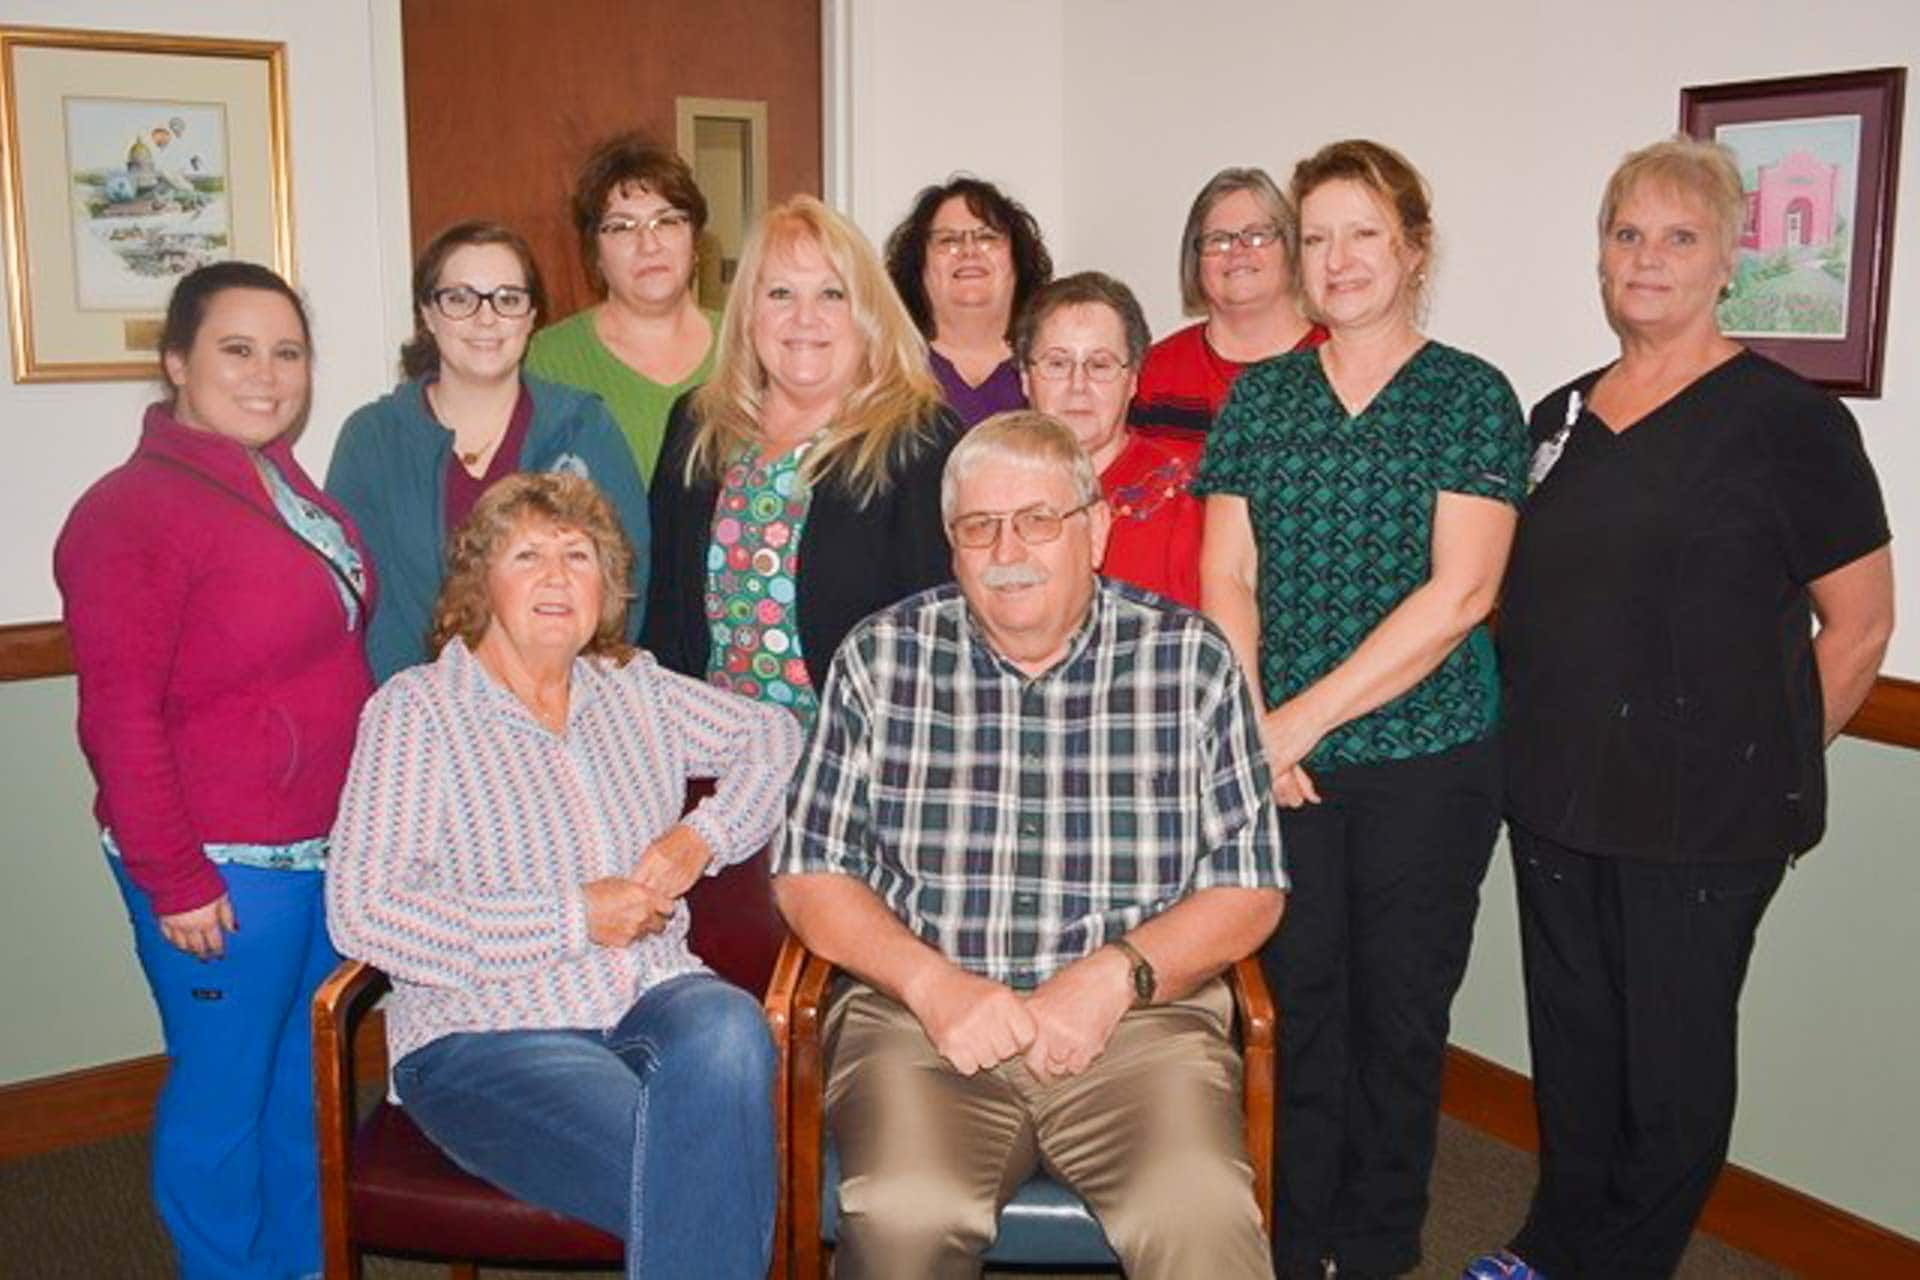 Pictured above are current and former staff members of Dr. Orvik's medical practice at Garton Plaza. Seated are Jo and Ben Orvik, standing left to right are: Sophia Bennett, Cheyenne Butcher, Angie Harper, Rita Butcher, Pam Nicholson, Connie Harper and back row Debbie Casto, Debbie Tomaro, Carla Foster.